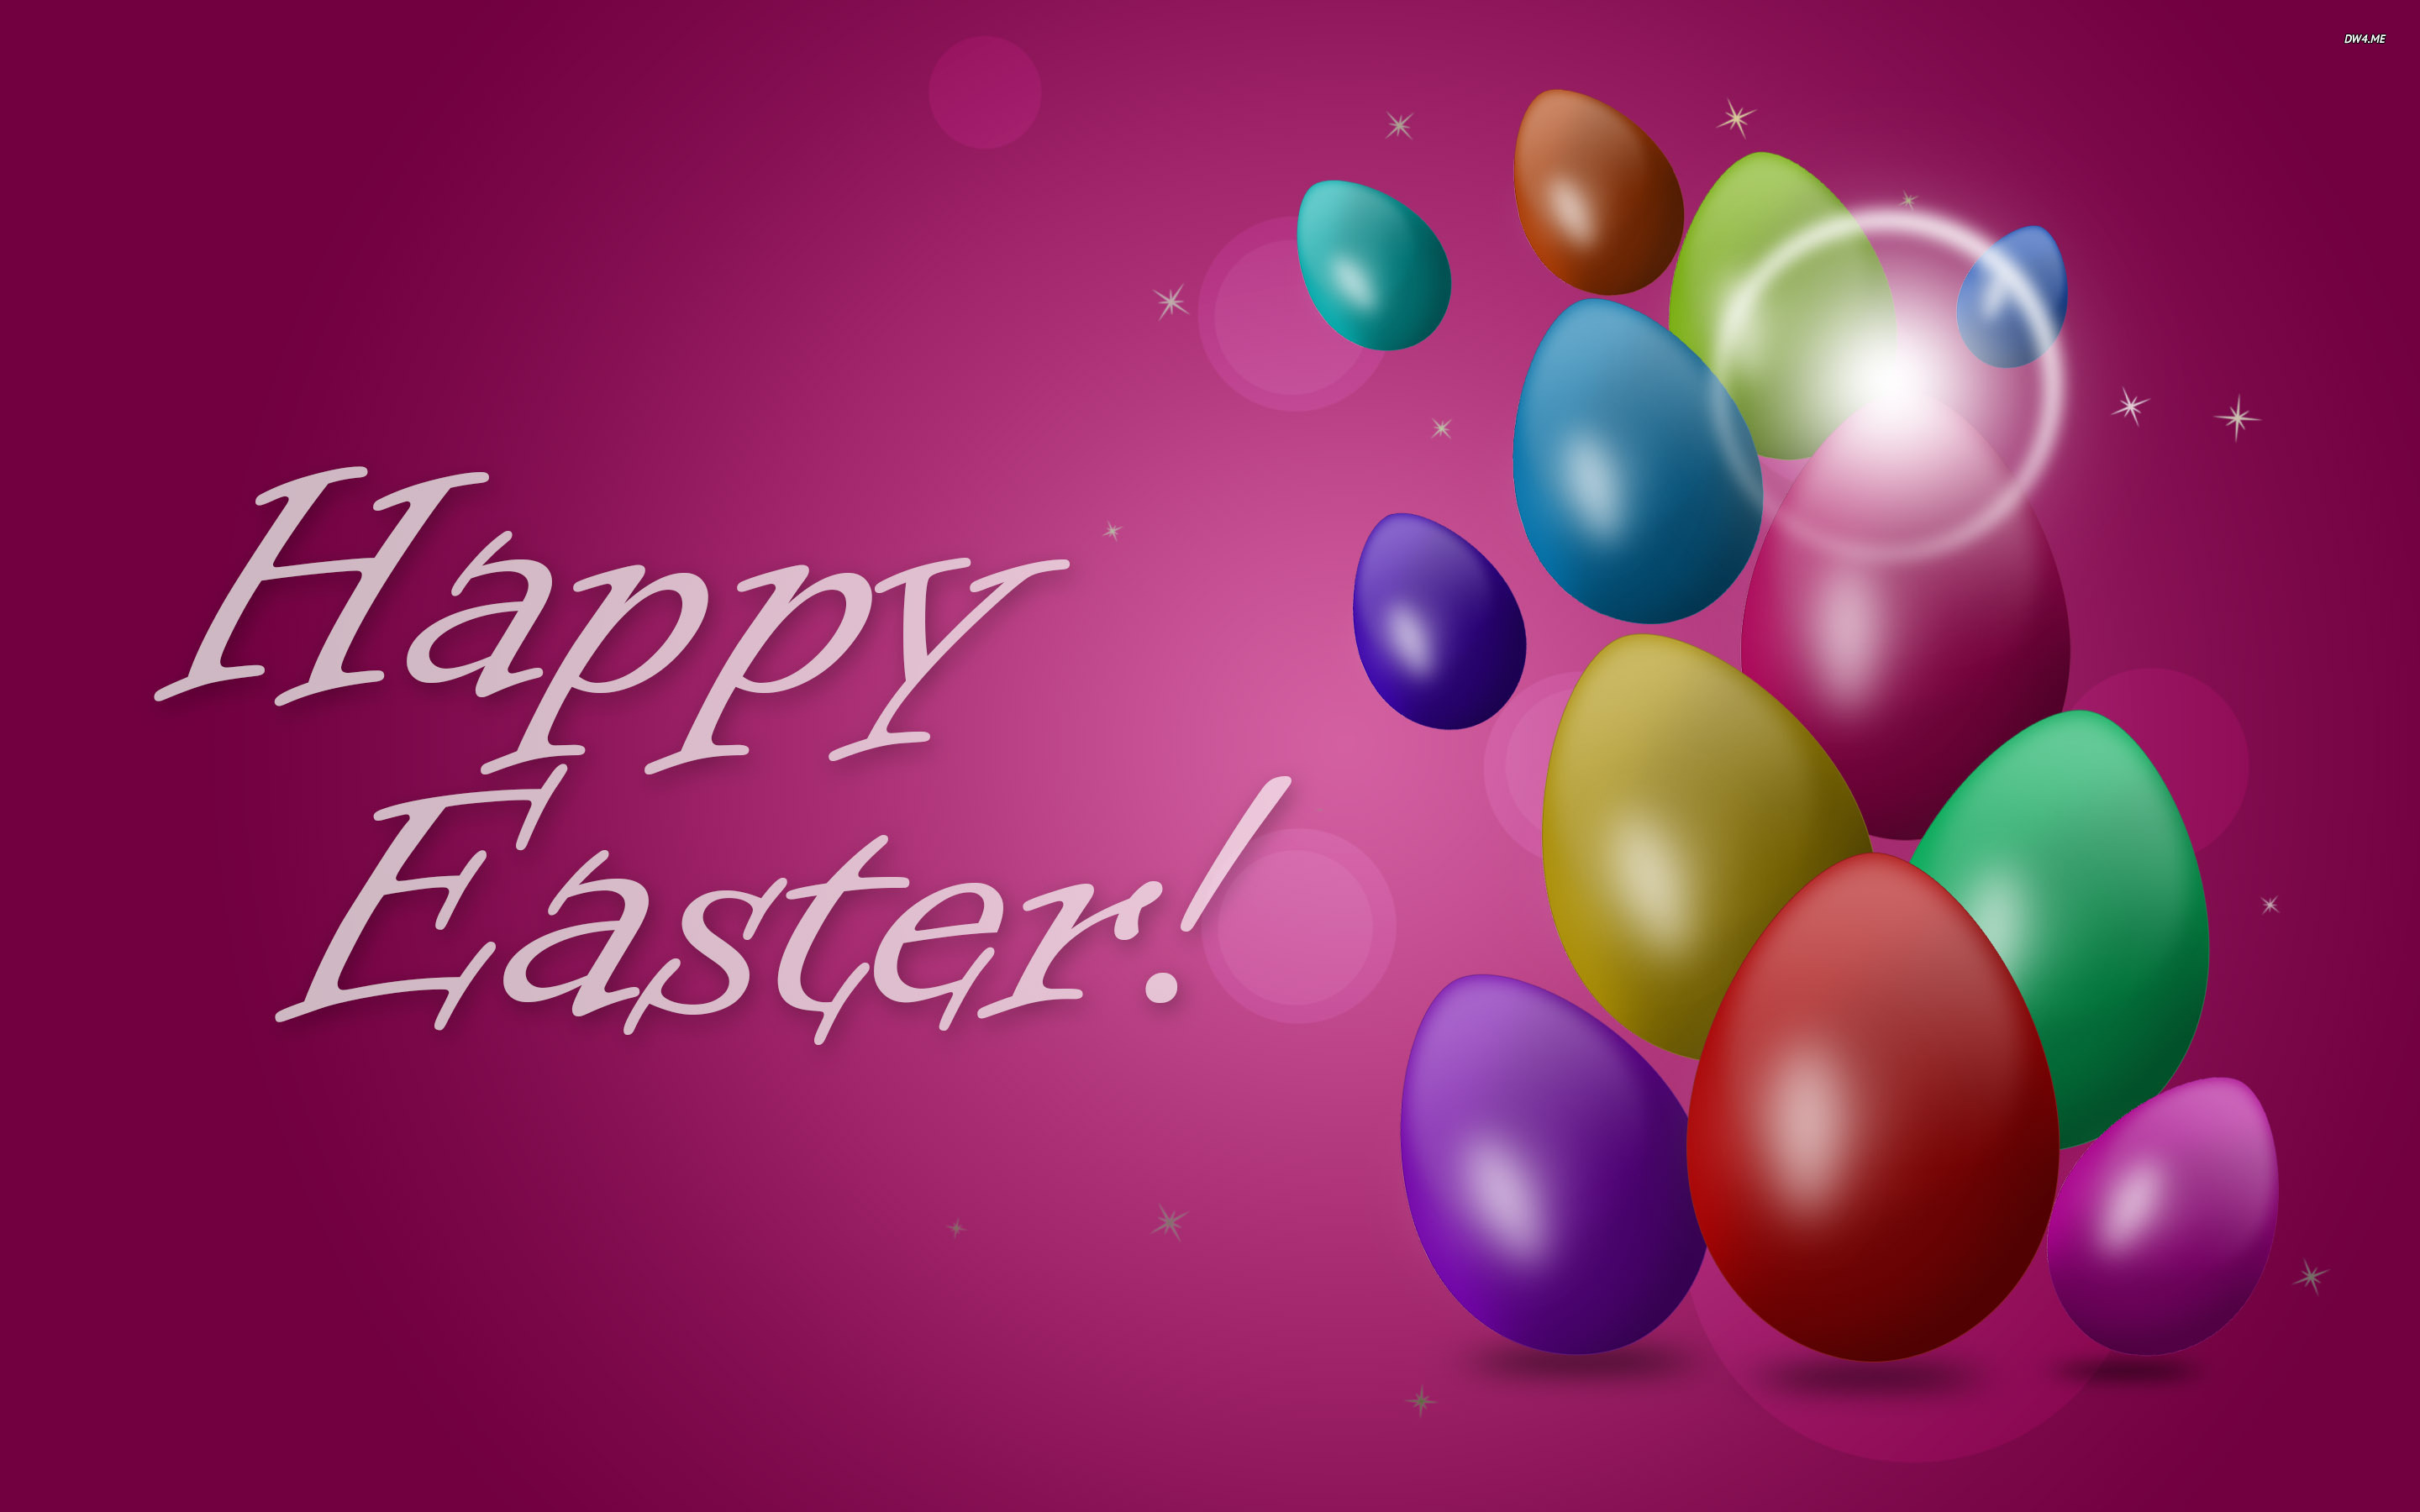 Happy Easter wallpaper   Holiday wallpapers   2175 2880x1800